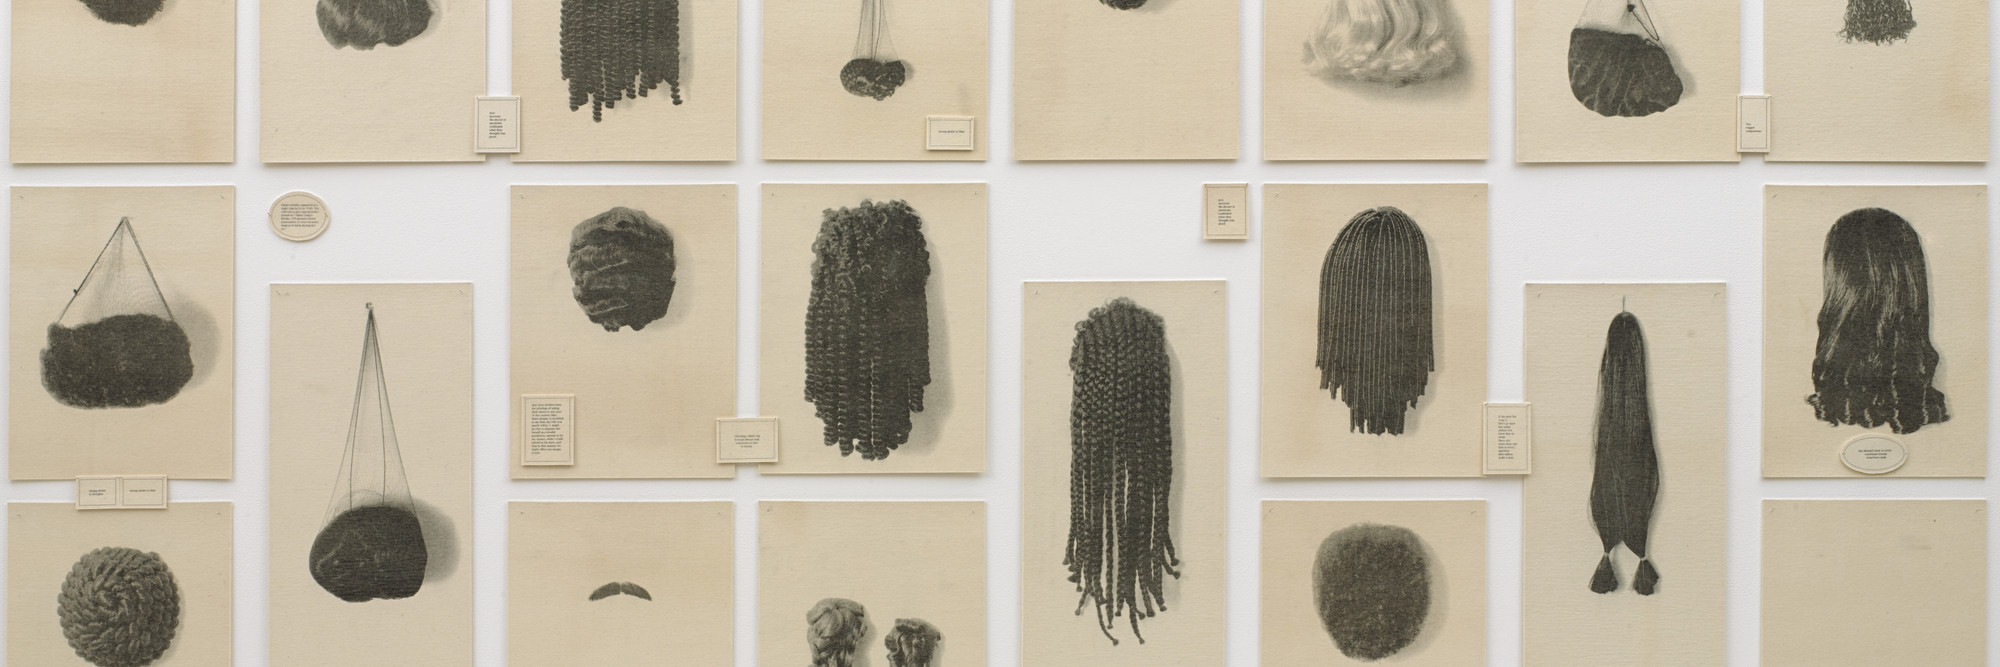 Lorna Simpson. <em>Wigs (Portfolio).</em> 1994. Portfolio of 21 lithographs on felt, with 17 lithographed felt text panels, overall: 6′ × 13′ 6″ (182.9 × 411.5 cm). Purchased with funds given by Agnes Gund, Howard B. Johnson, and Emily Fisher Landau. © 2017 Lorna Simpson. Photo: John Wronn